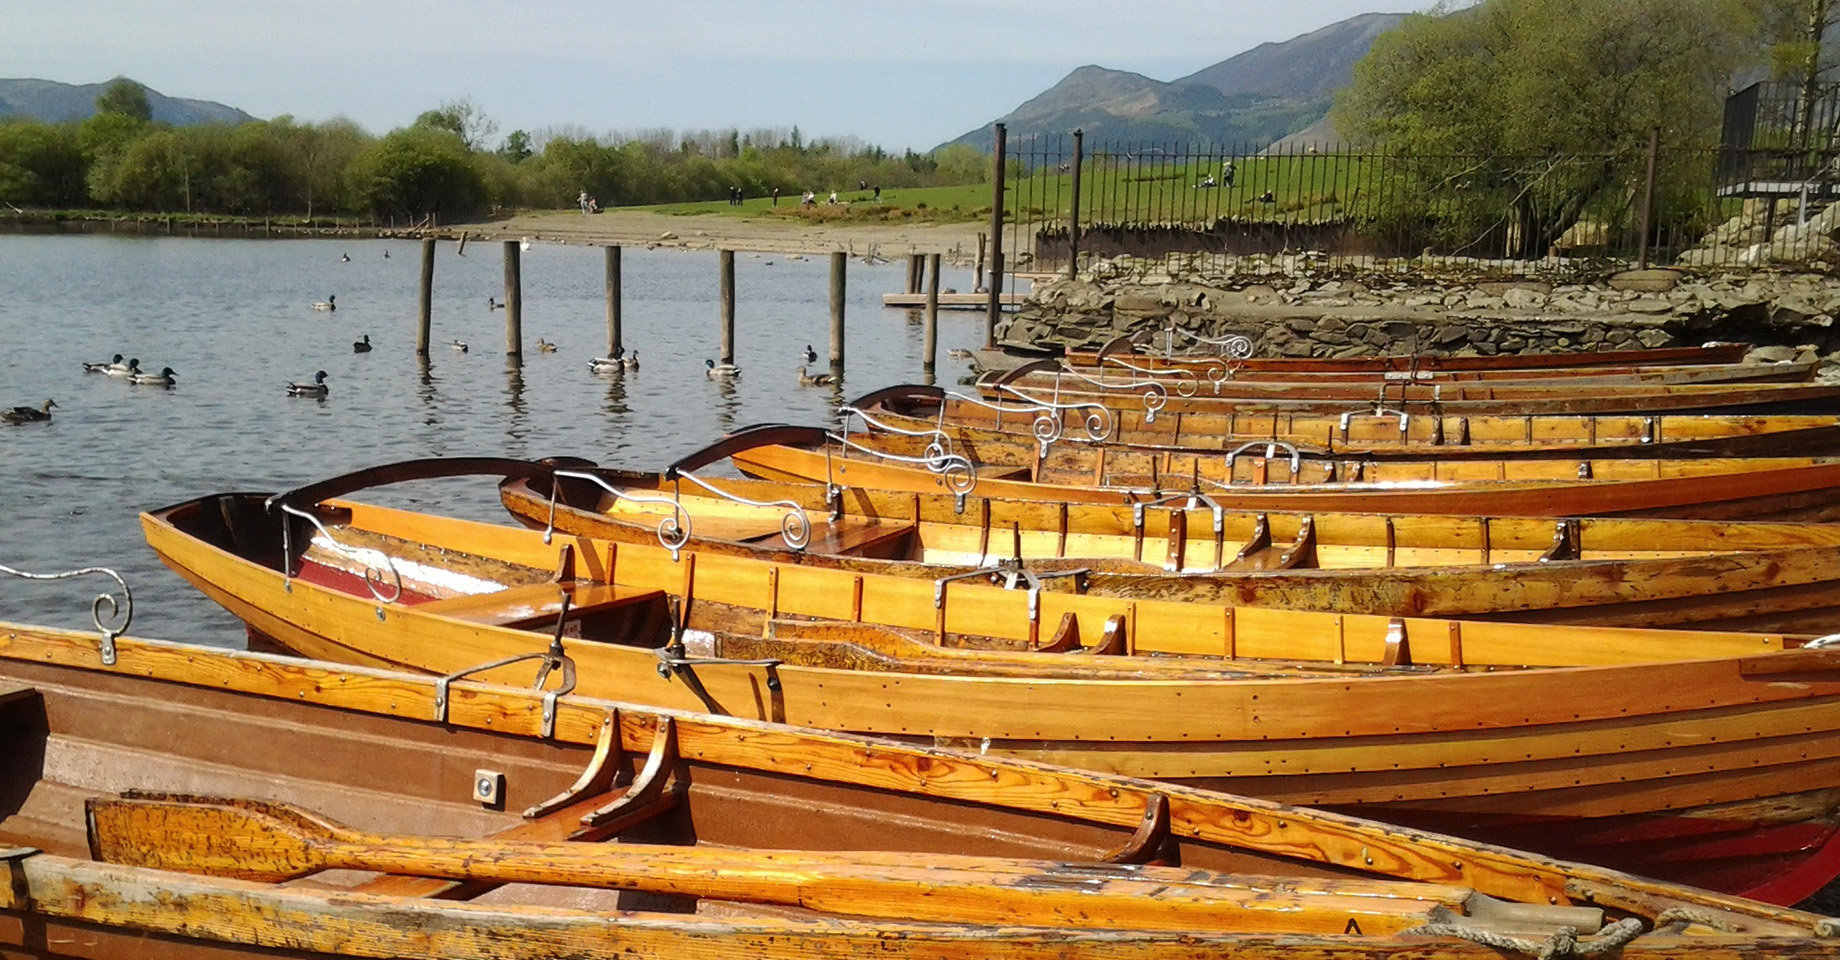 Row boats in the Lakes District